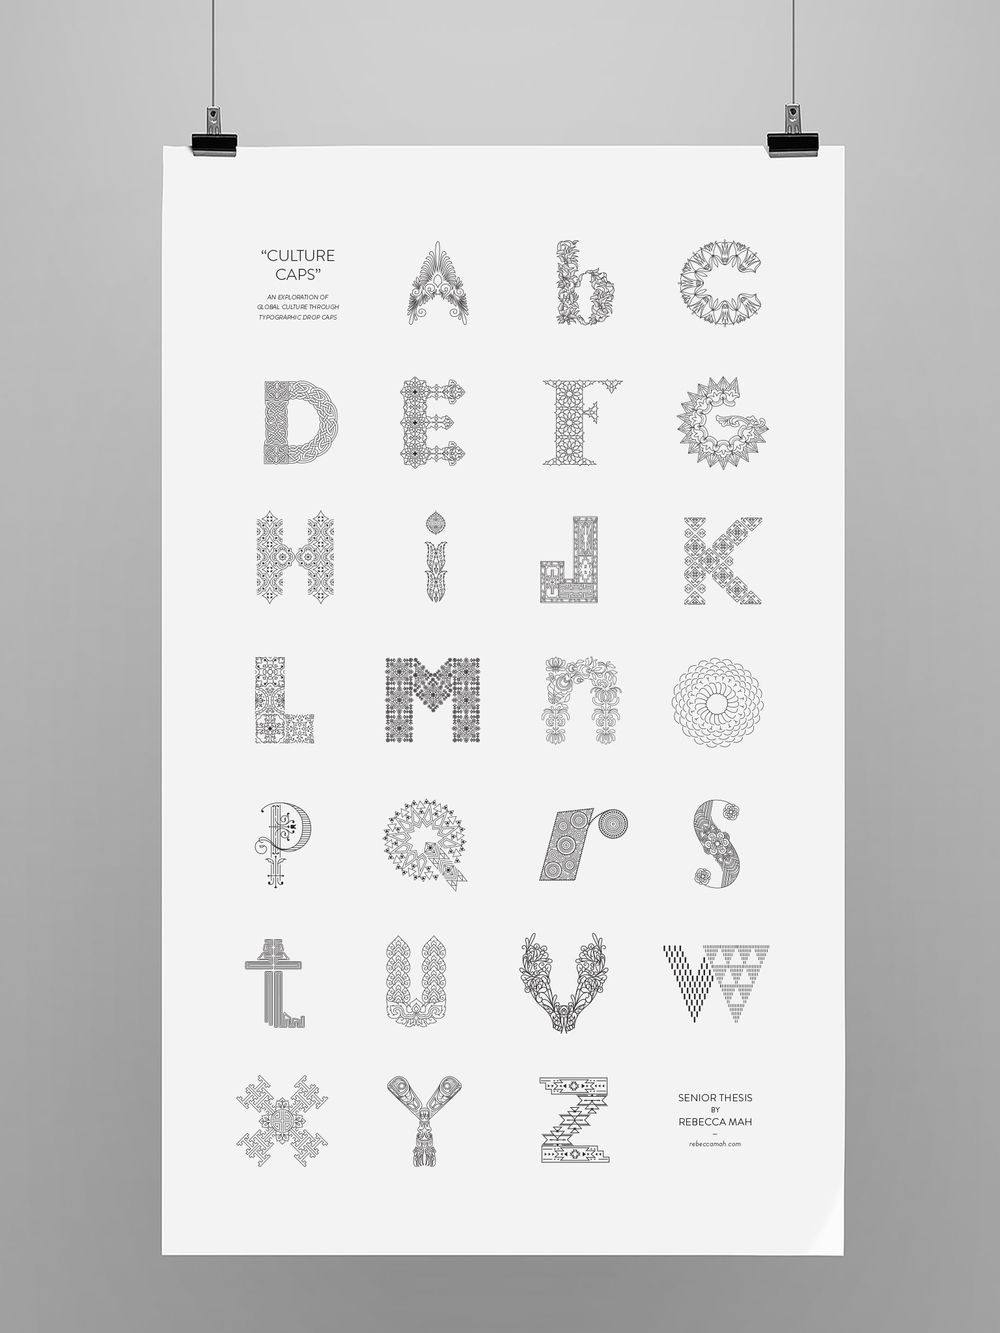 For her senior thesis, Tyler School of Art graduate Rebecca Mah created Culture Caps, a drop cap alphabet influenced by different regions corresponding to each letter.